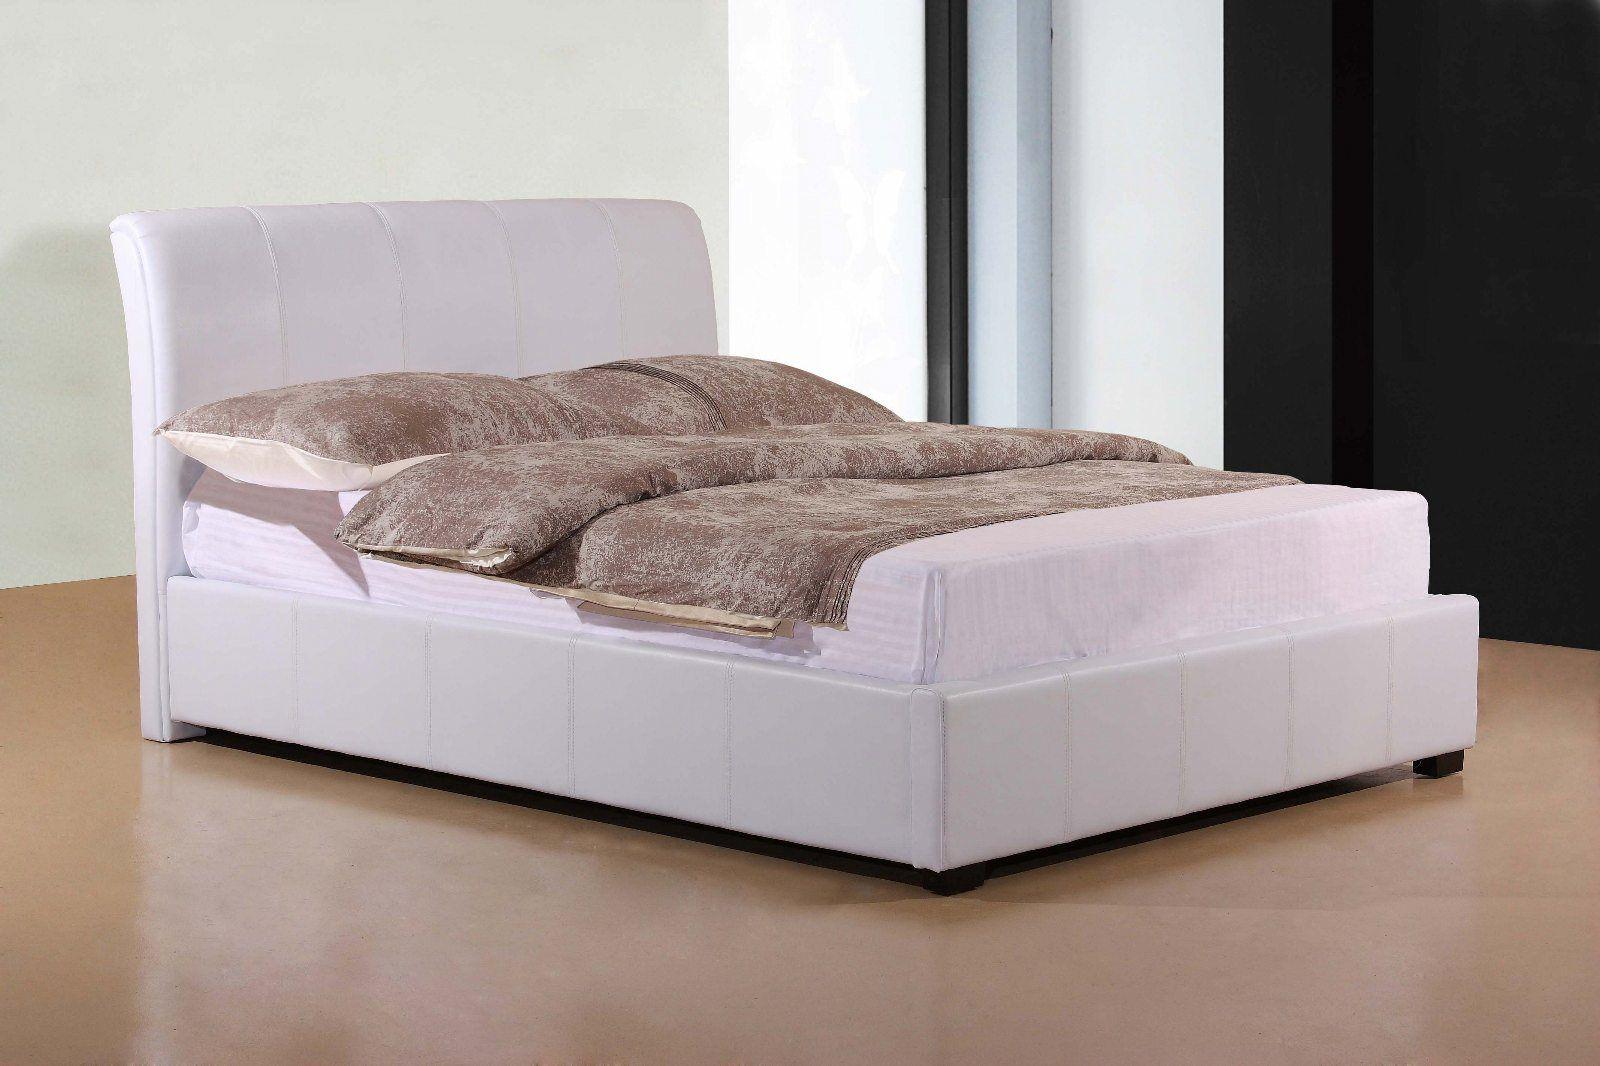 Tremendous Otto Faux Leather Ottoman Bed White From 352 Free Bralicious Painted Fabric Chair Ideas Braliciousco